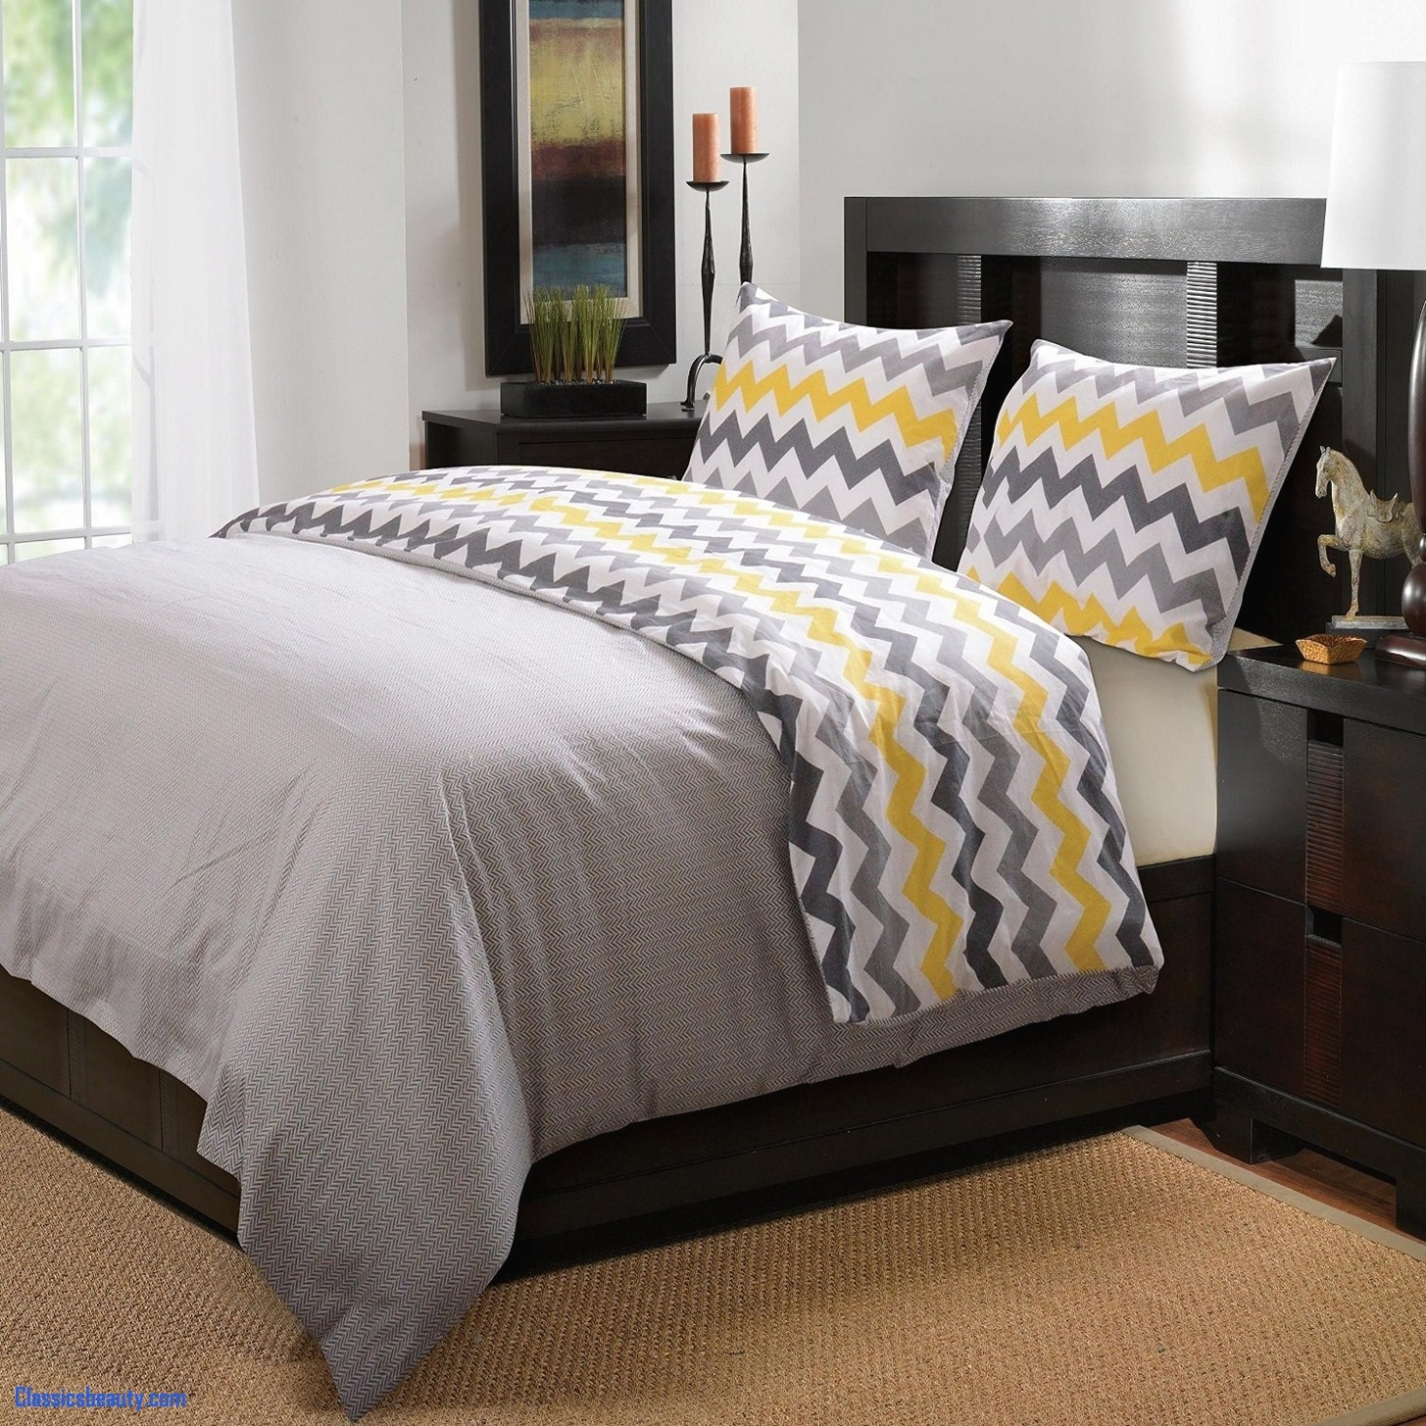 Luxury Pictures Of Yellow And Gray Bedrooms Ideas Best Home Design Layjao